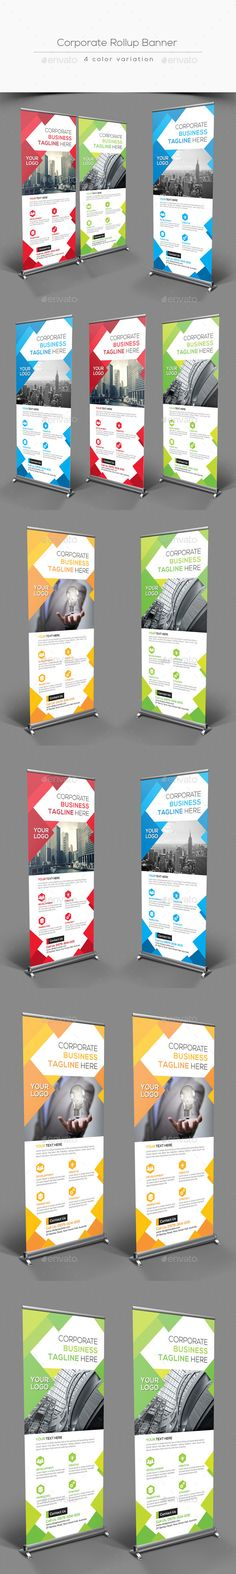 Corporate Rollup Banner Template PSD #design Download: http://graphicriver.net/item/corporate-rollup-banner/13459225?ref=ksioks